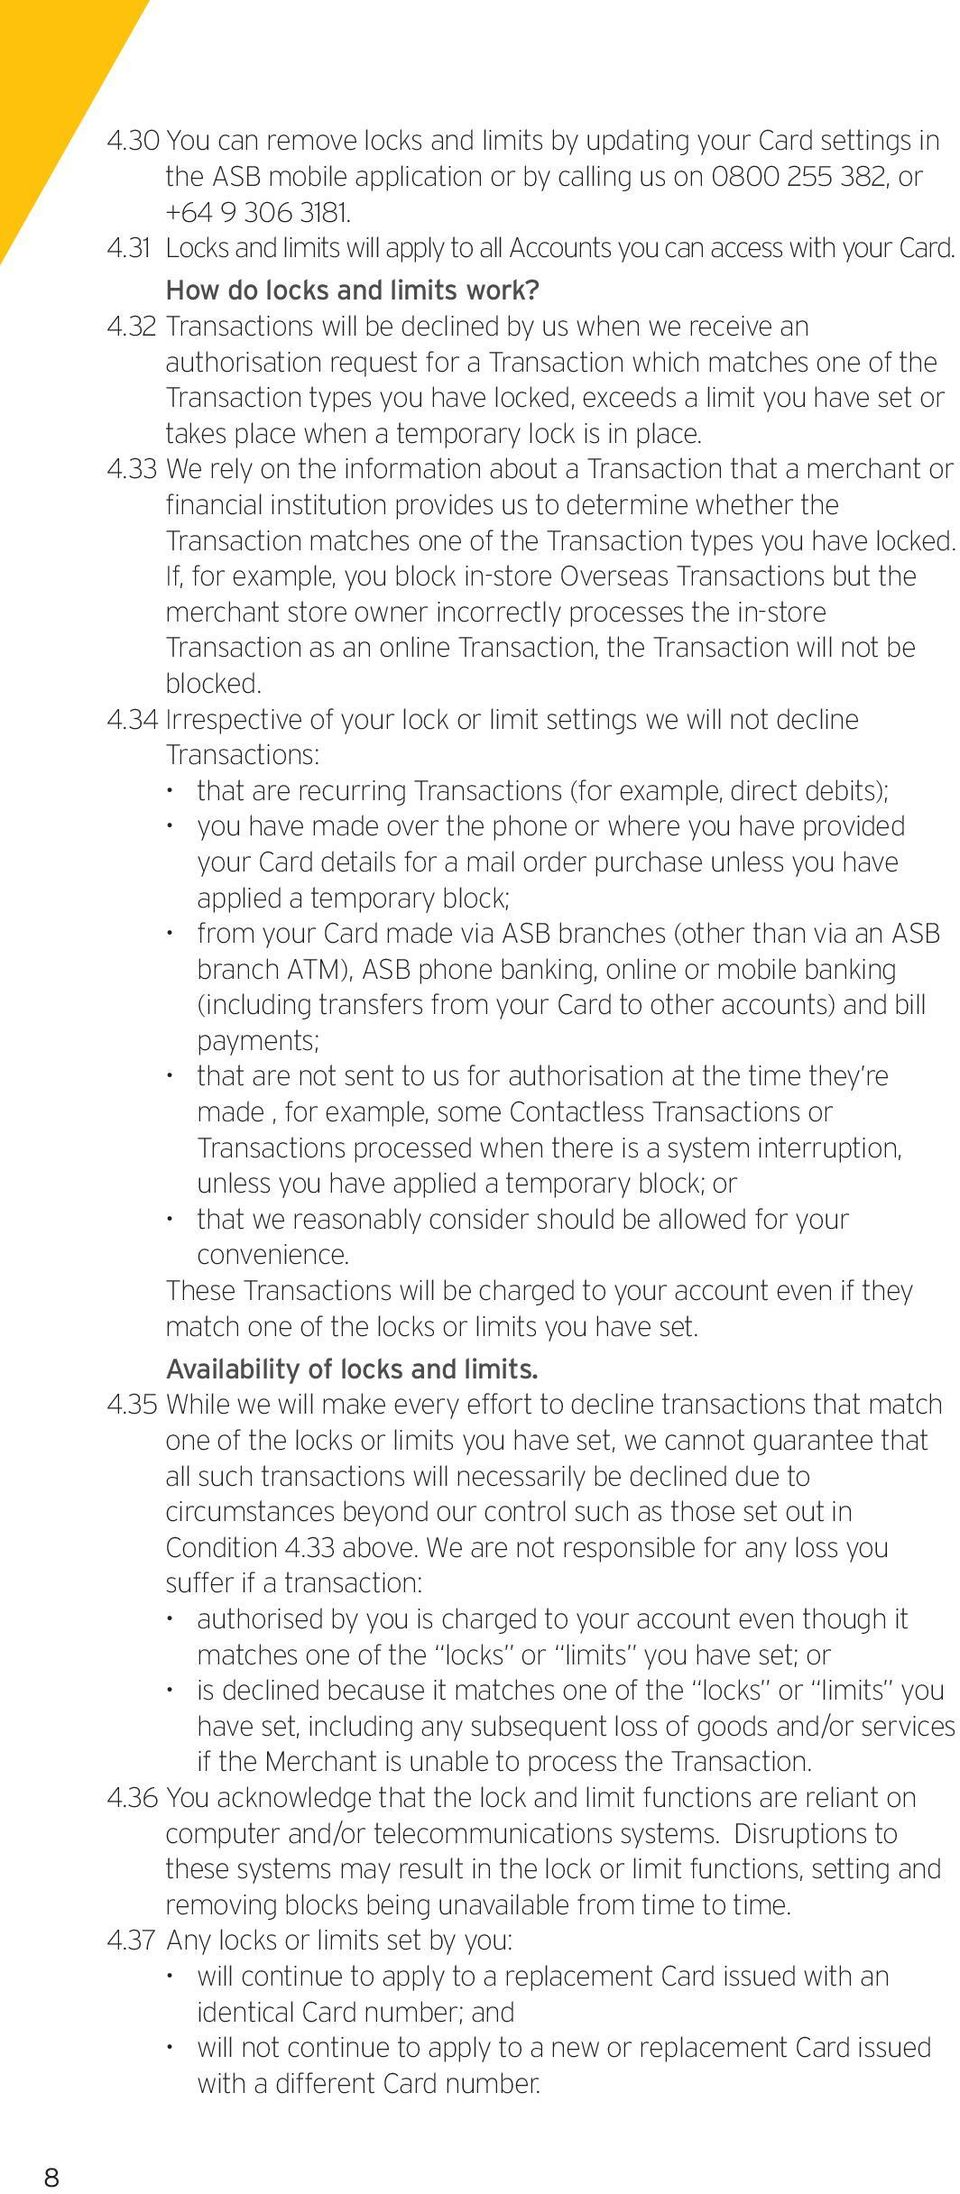 32 Transactions will be declined by us when we receive an authorisation request for a Transaction which matches one of the Transaction types you have locked, exceeds a limit you have set or takes